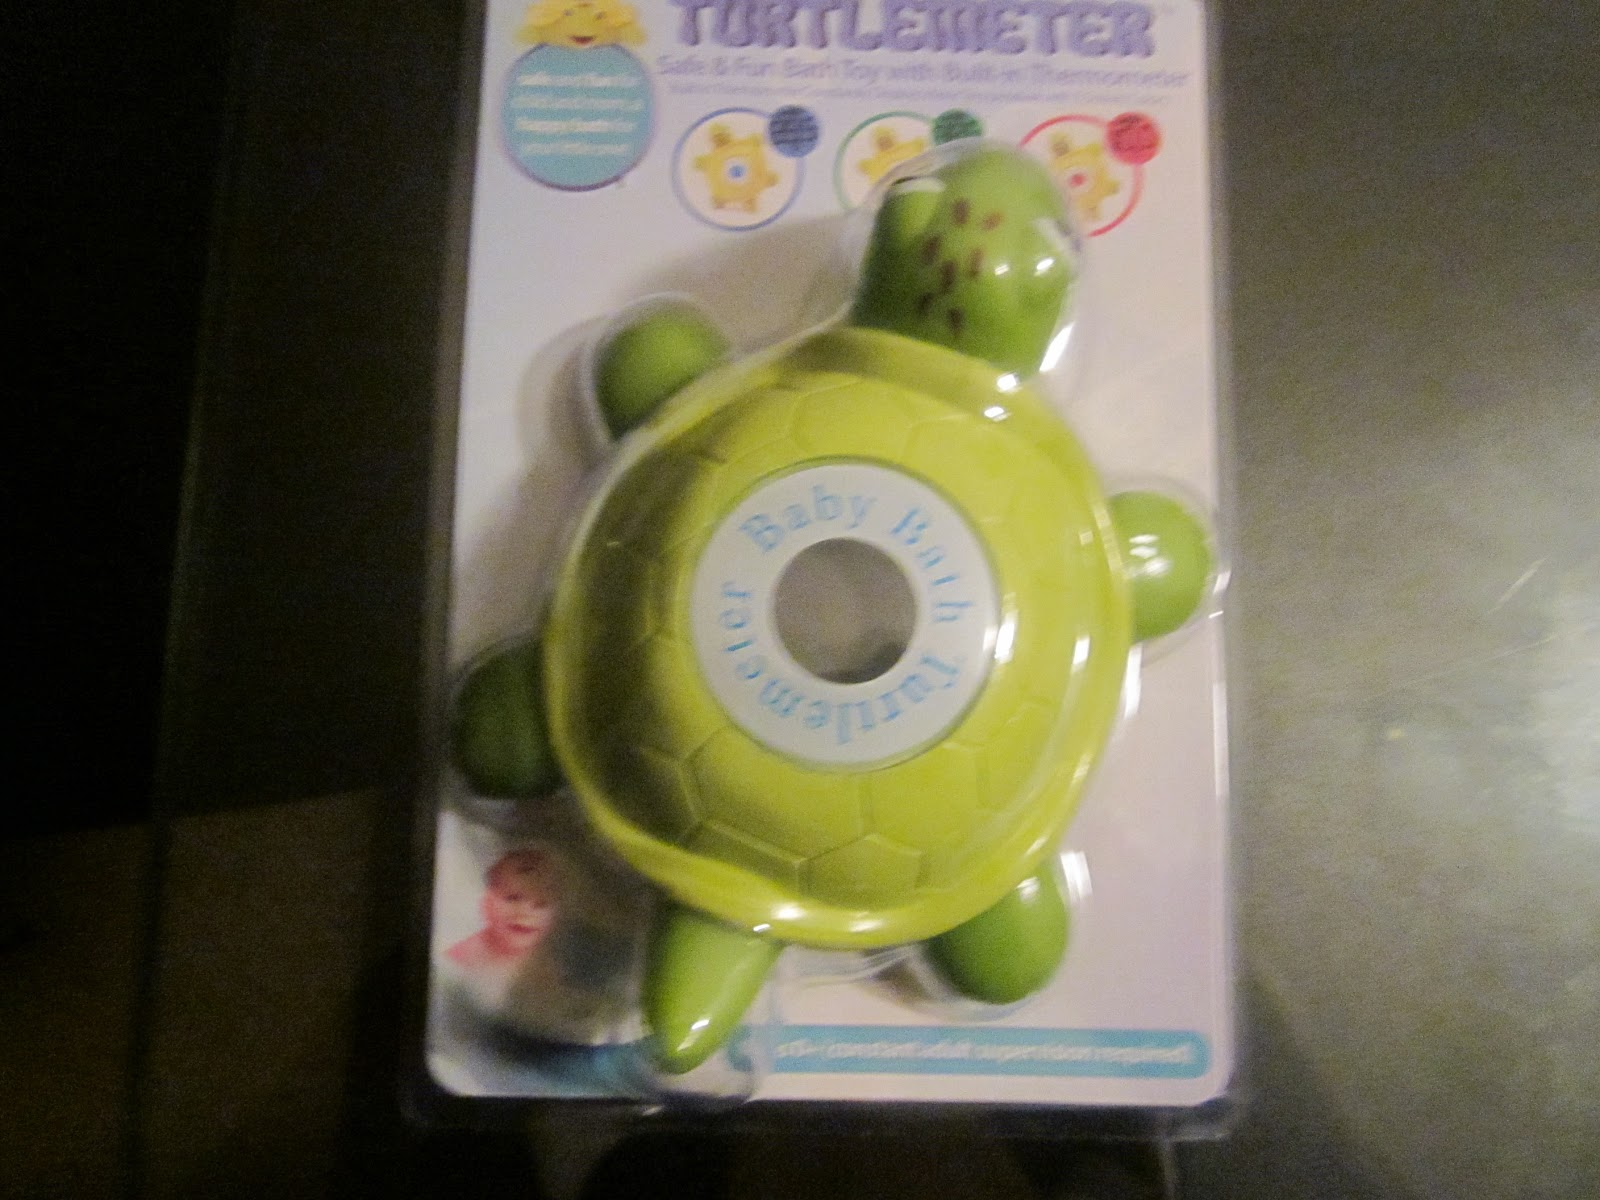 Turtlemeter The Baby Bath Floating Turtle Toy And Bath